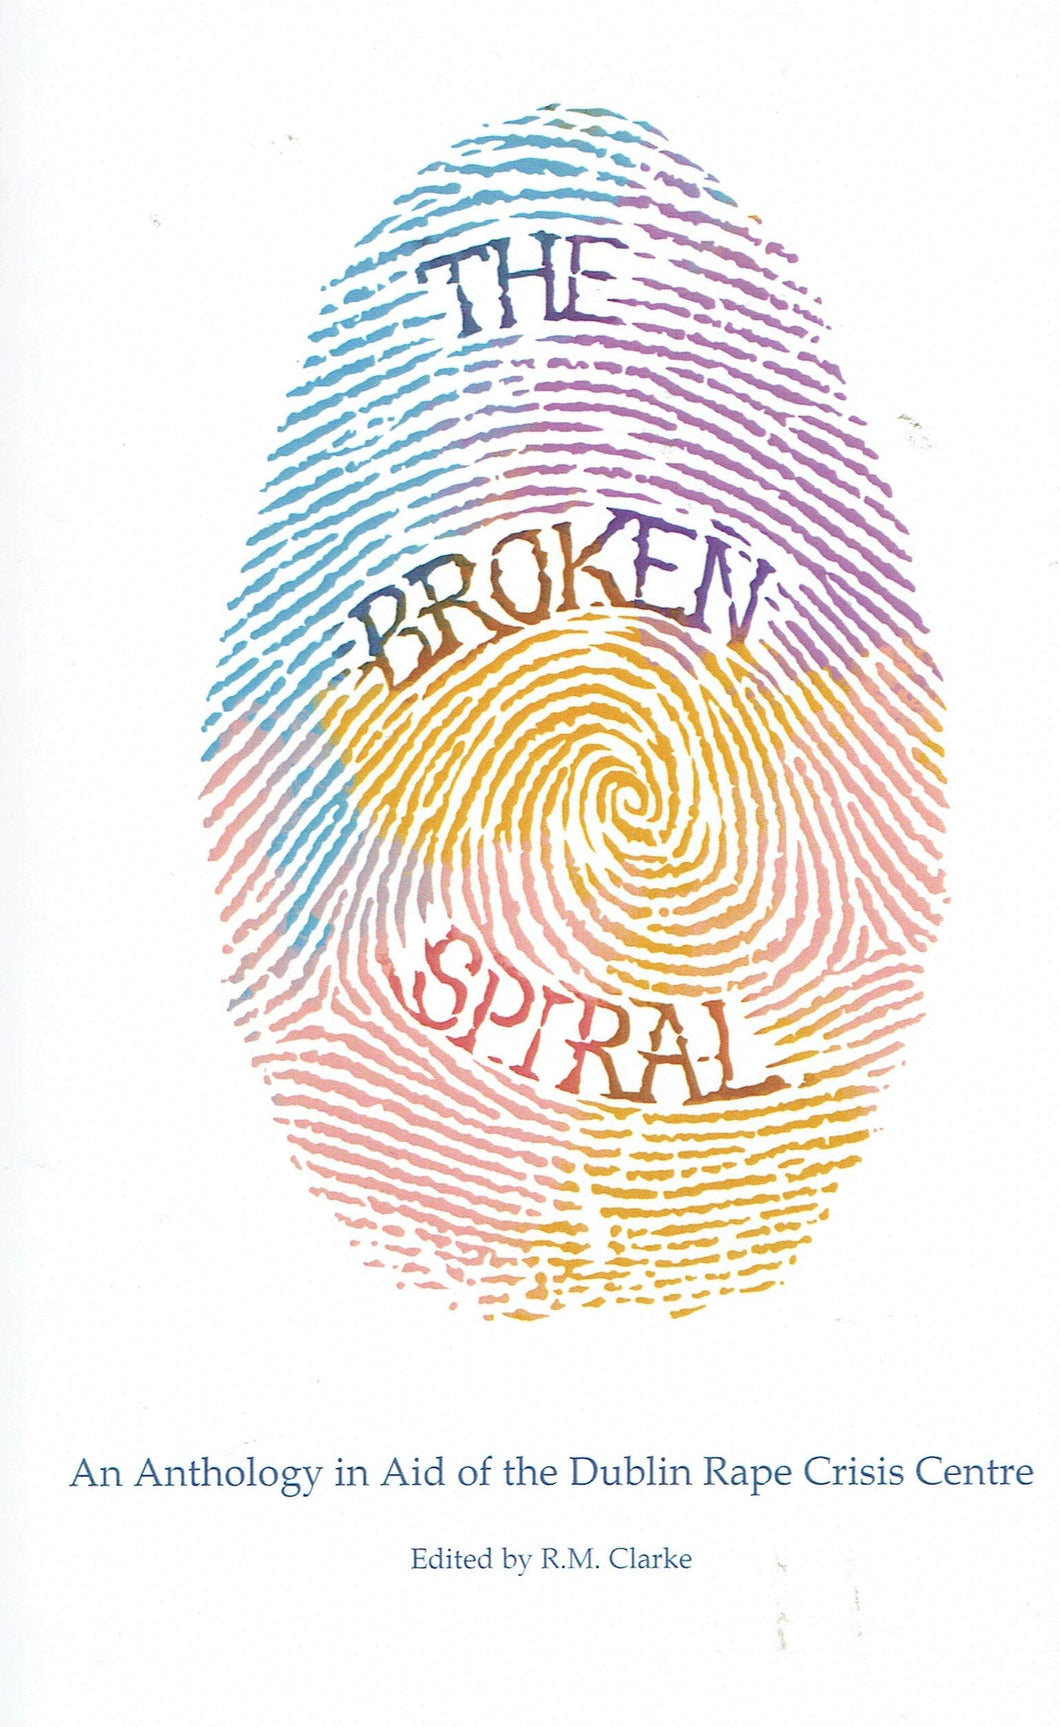 The Broken Spiral: An Anthology in Aid of the Dublin Rape Crisis Centre